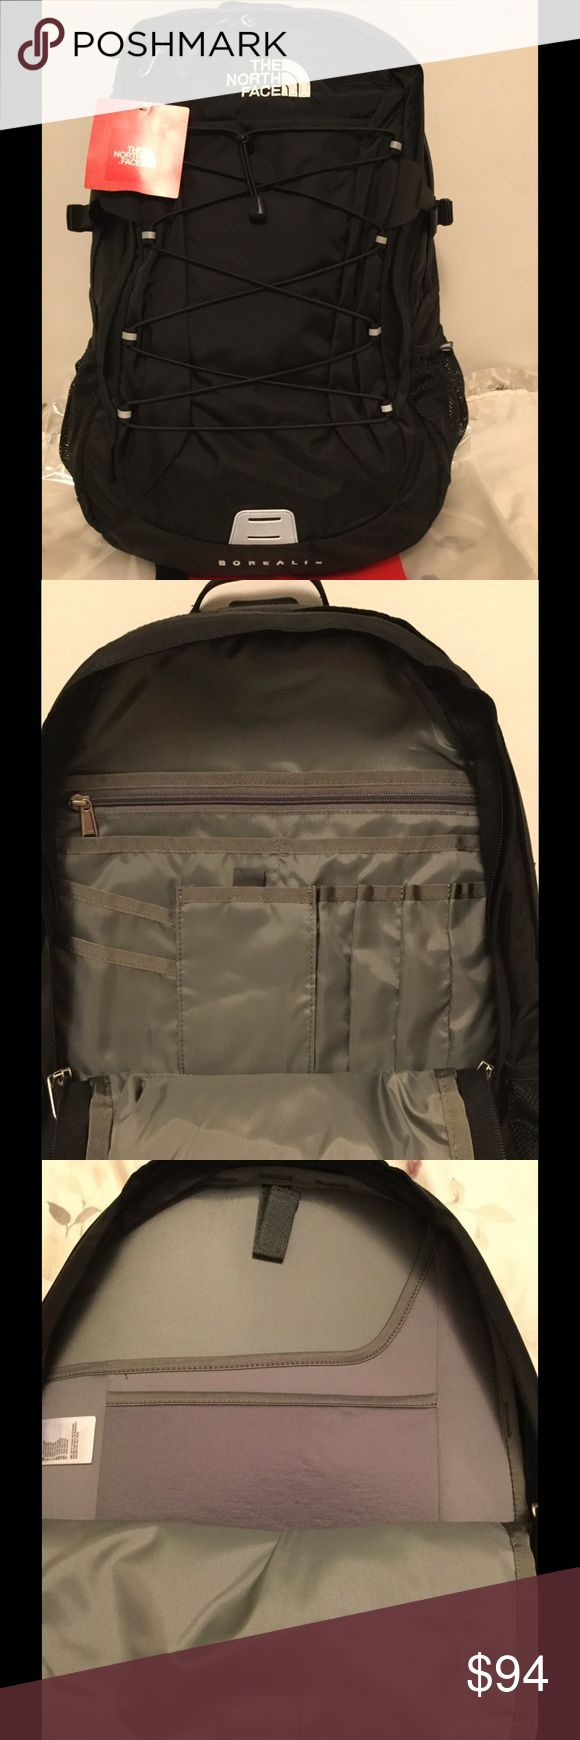 NWT The North Face Men's Borealis backpack Brand new with tag, The North Face Men's Borealis backpack in black. Has laptop an tablet sleeves. Two mesh water bottle pockets (one on each side). Price is firm. No trades. The North Face Bags Backpacks